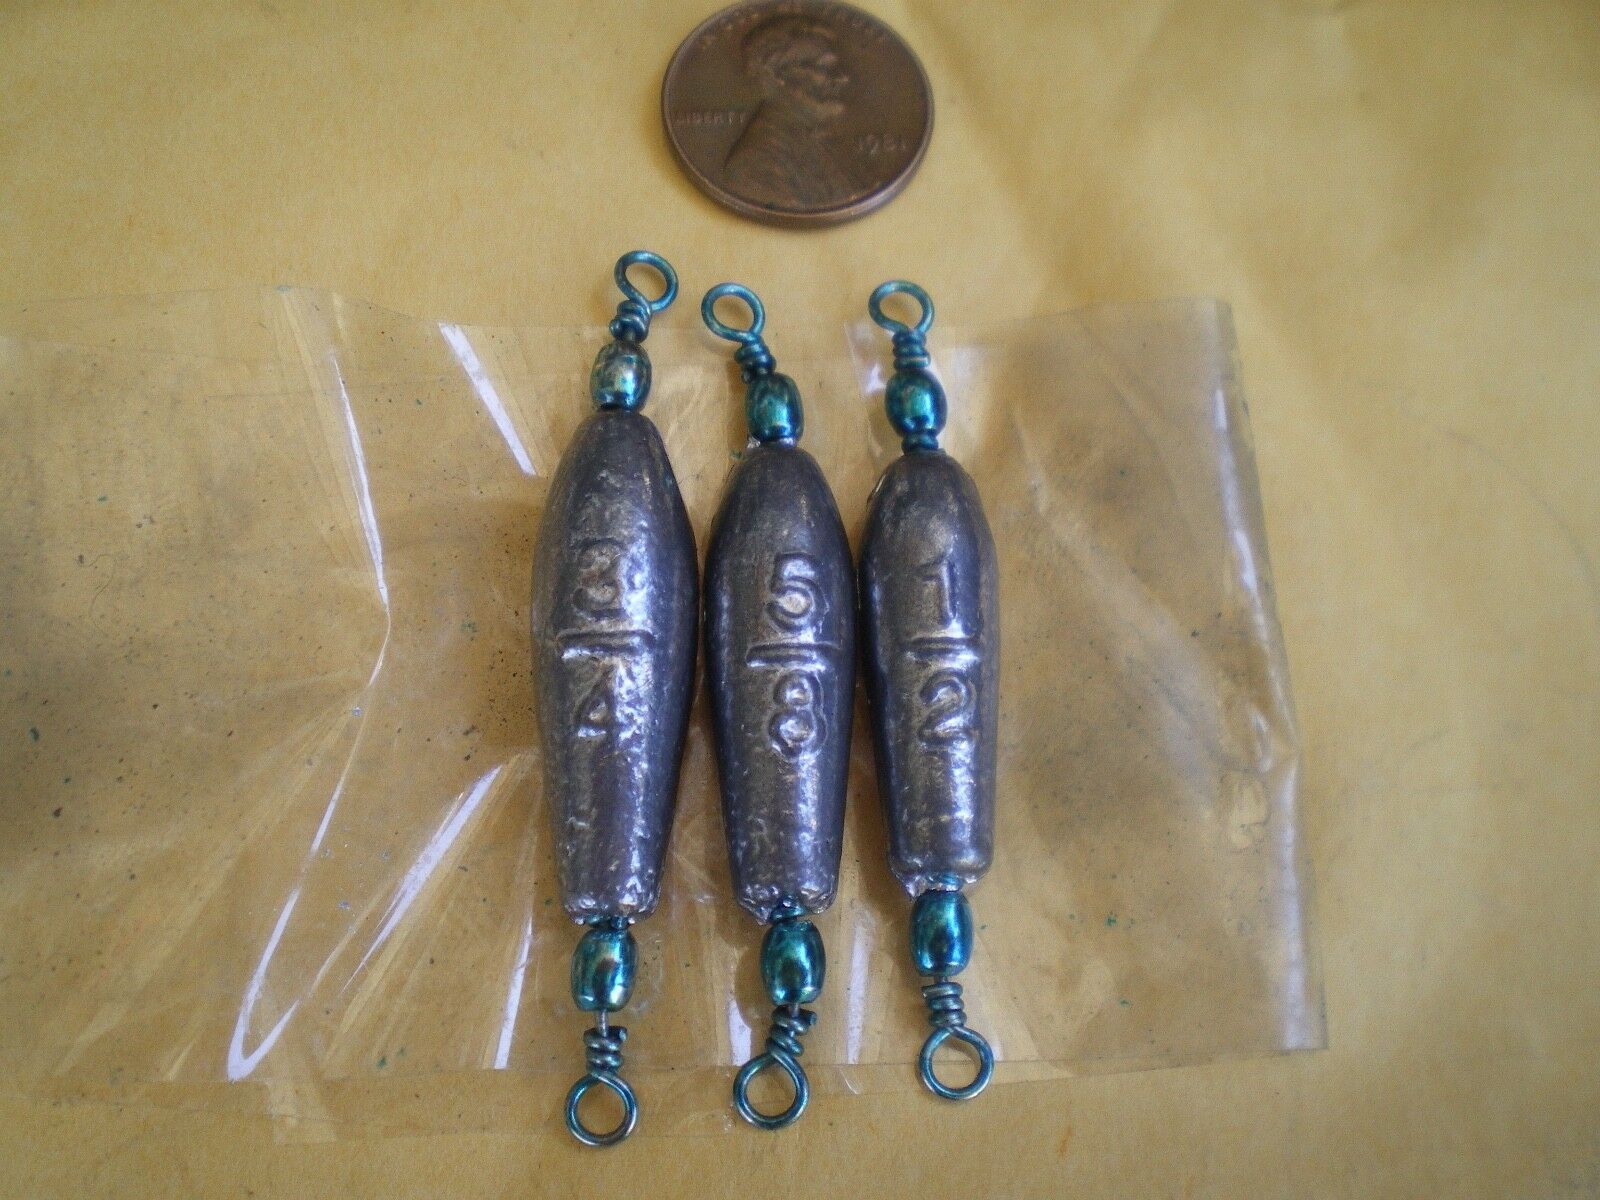 90 PCS. TROLLING SINKER W TURQUOISE BARREL SWIVEL 3 4, 5 8, 1 2 OZ. 30 EACH.